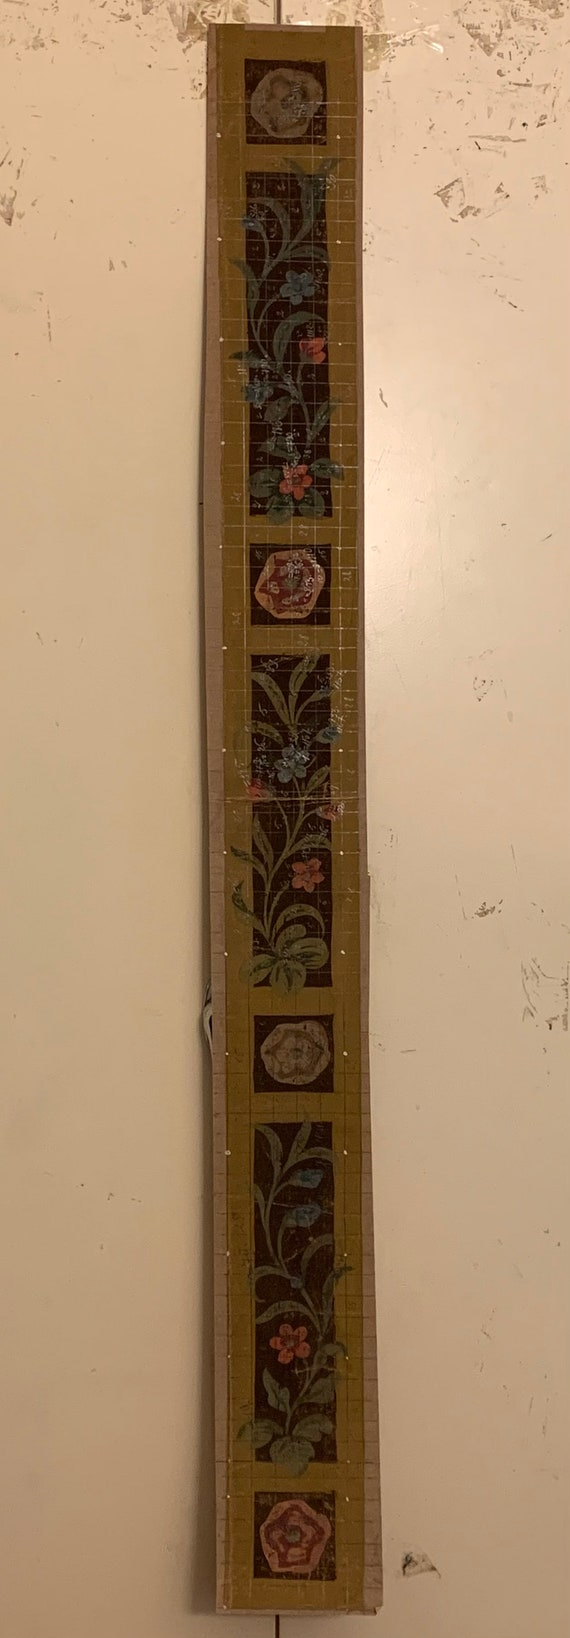 Beautiful 19th Century French Hand Painted Border For Tapestry Development (3351)